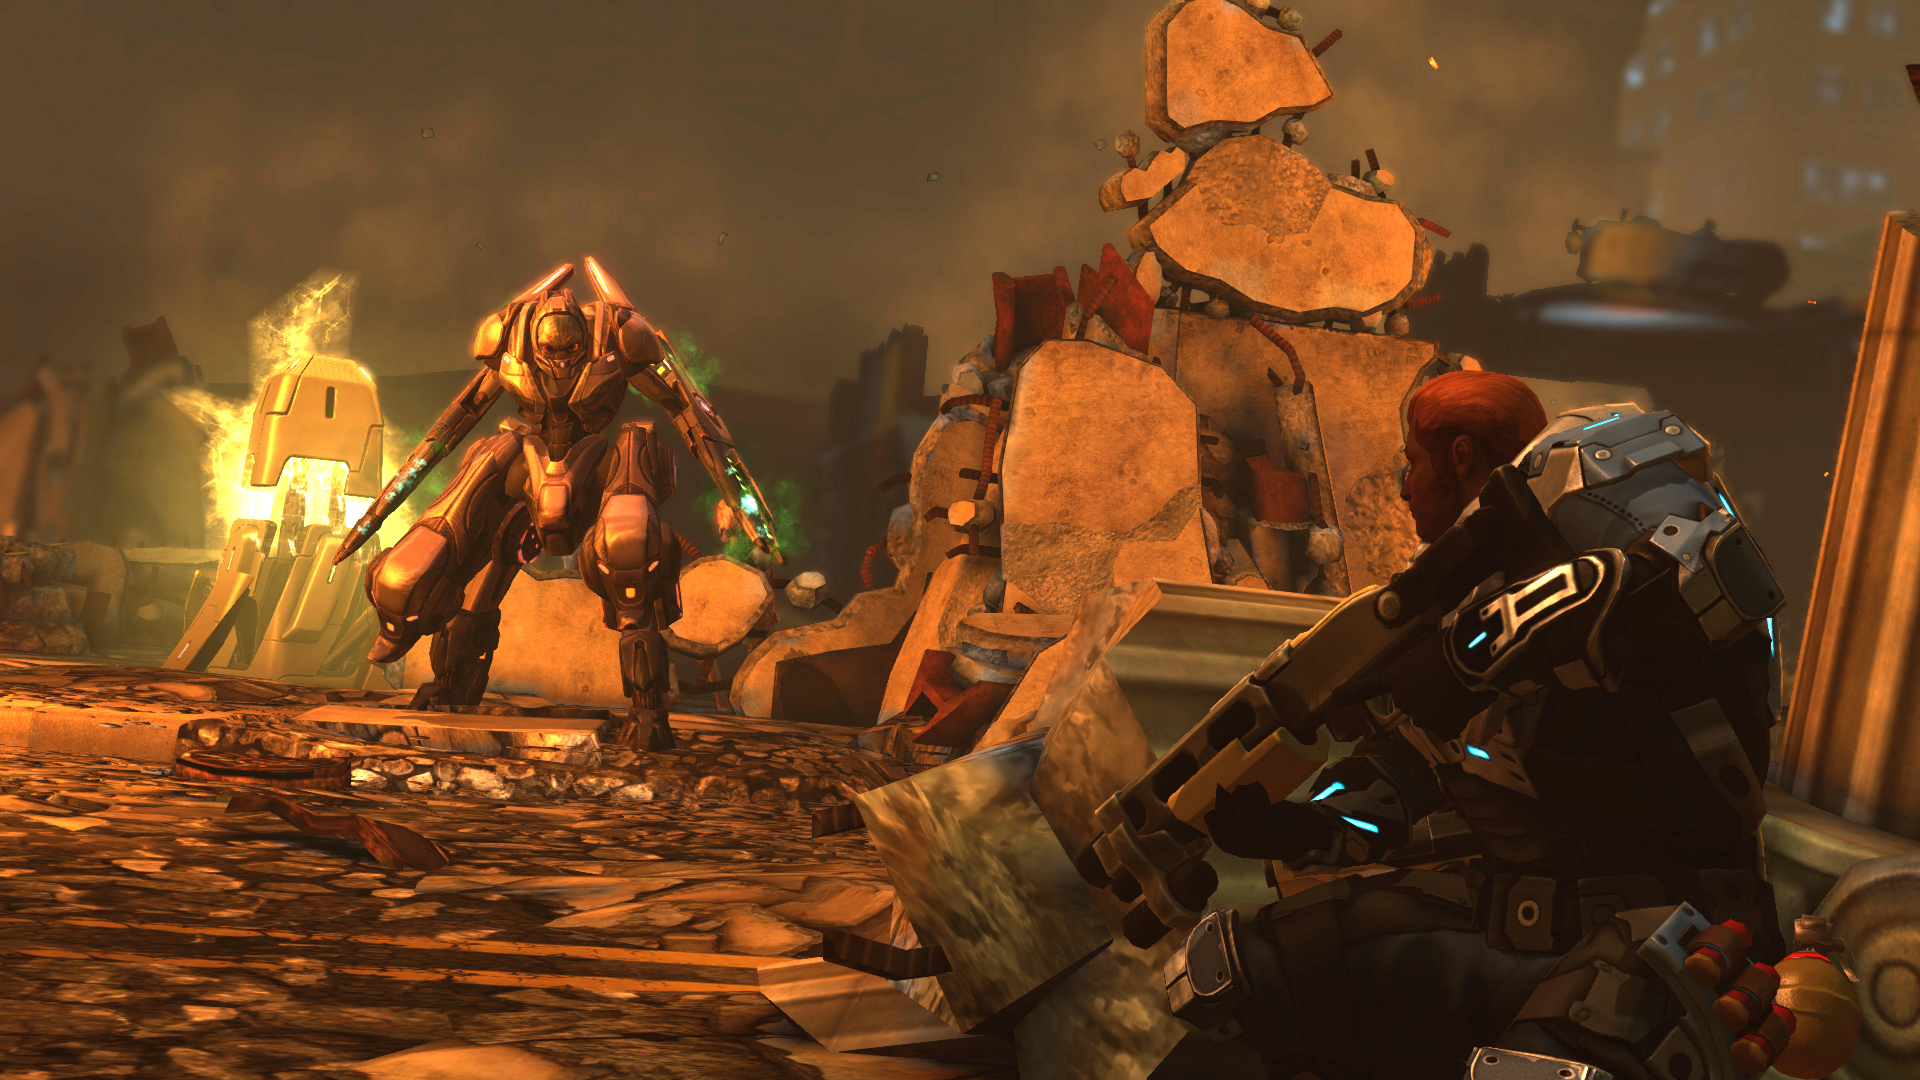 XCOM: Enemy Within headed to consoles and PC Nov. 12 | Polygon